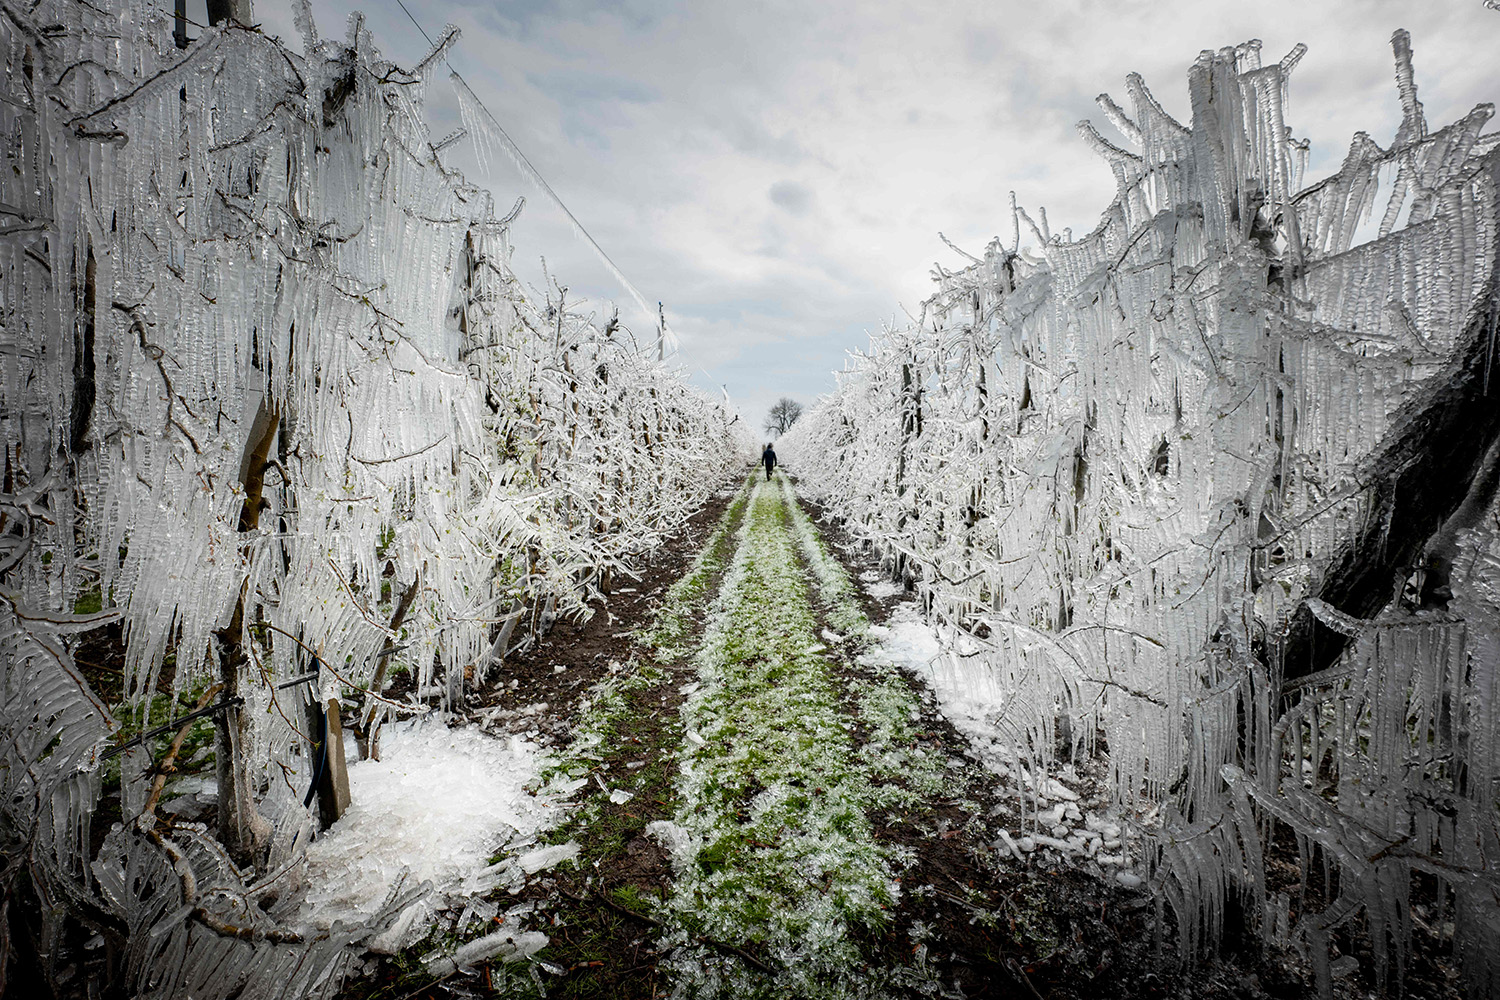 A man walks through an alley of artificially frozen apple trees in an orchard outside the village of Miloslavov-Alzbetin Dvor, Slovakia, on March 25. Apple growers protect the blooming apple flowers from freezing during the night's low temperatures by icing them with over-tree sprinkler systems. JOE KLAMAR/AFP via Getty Images